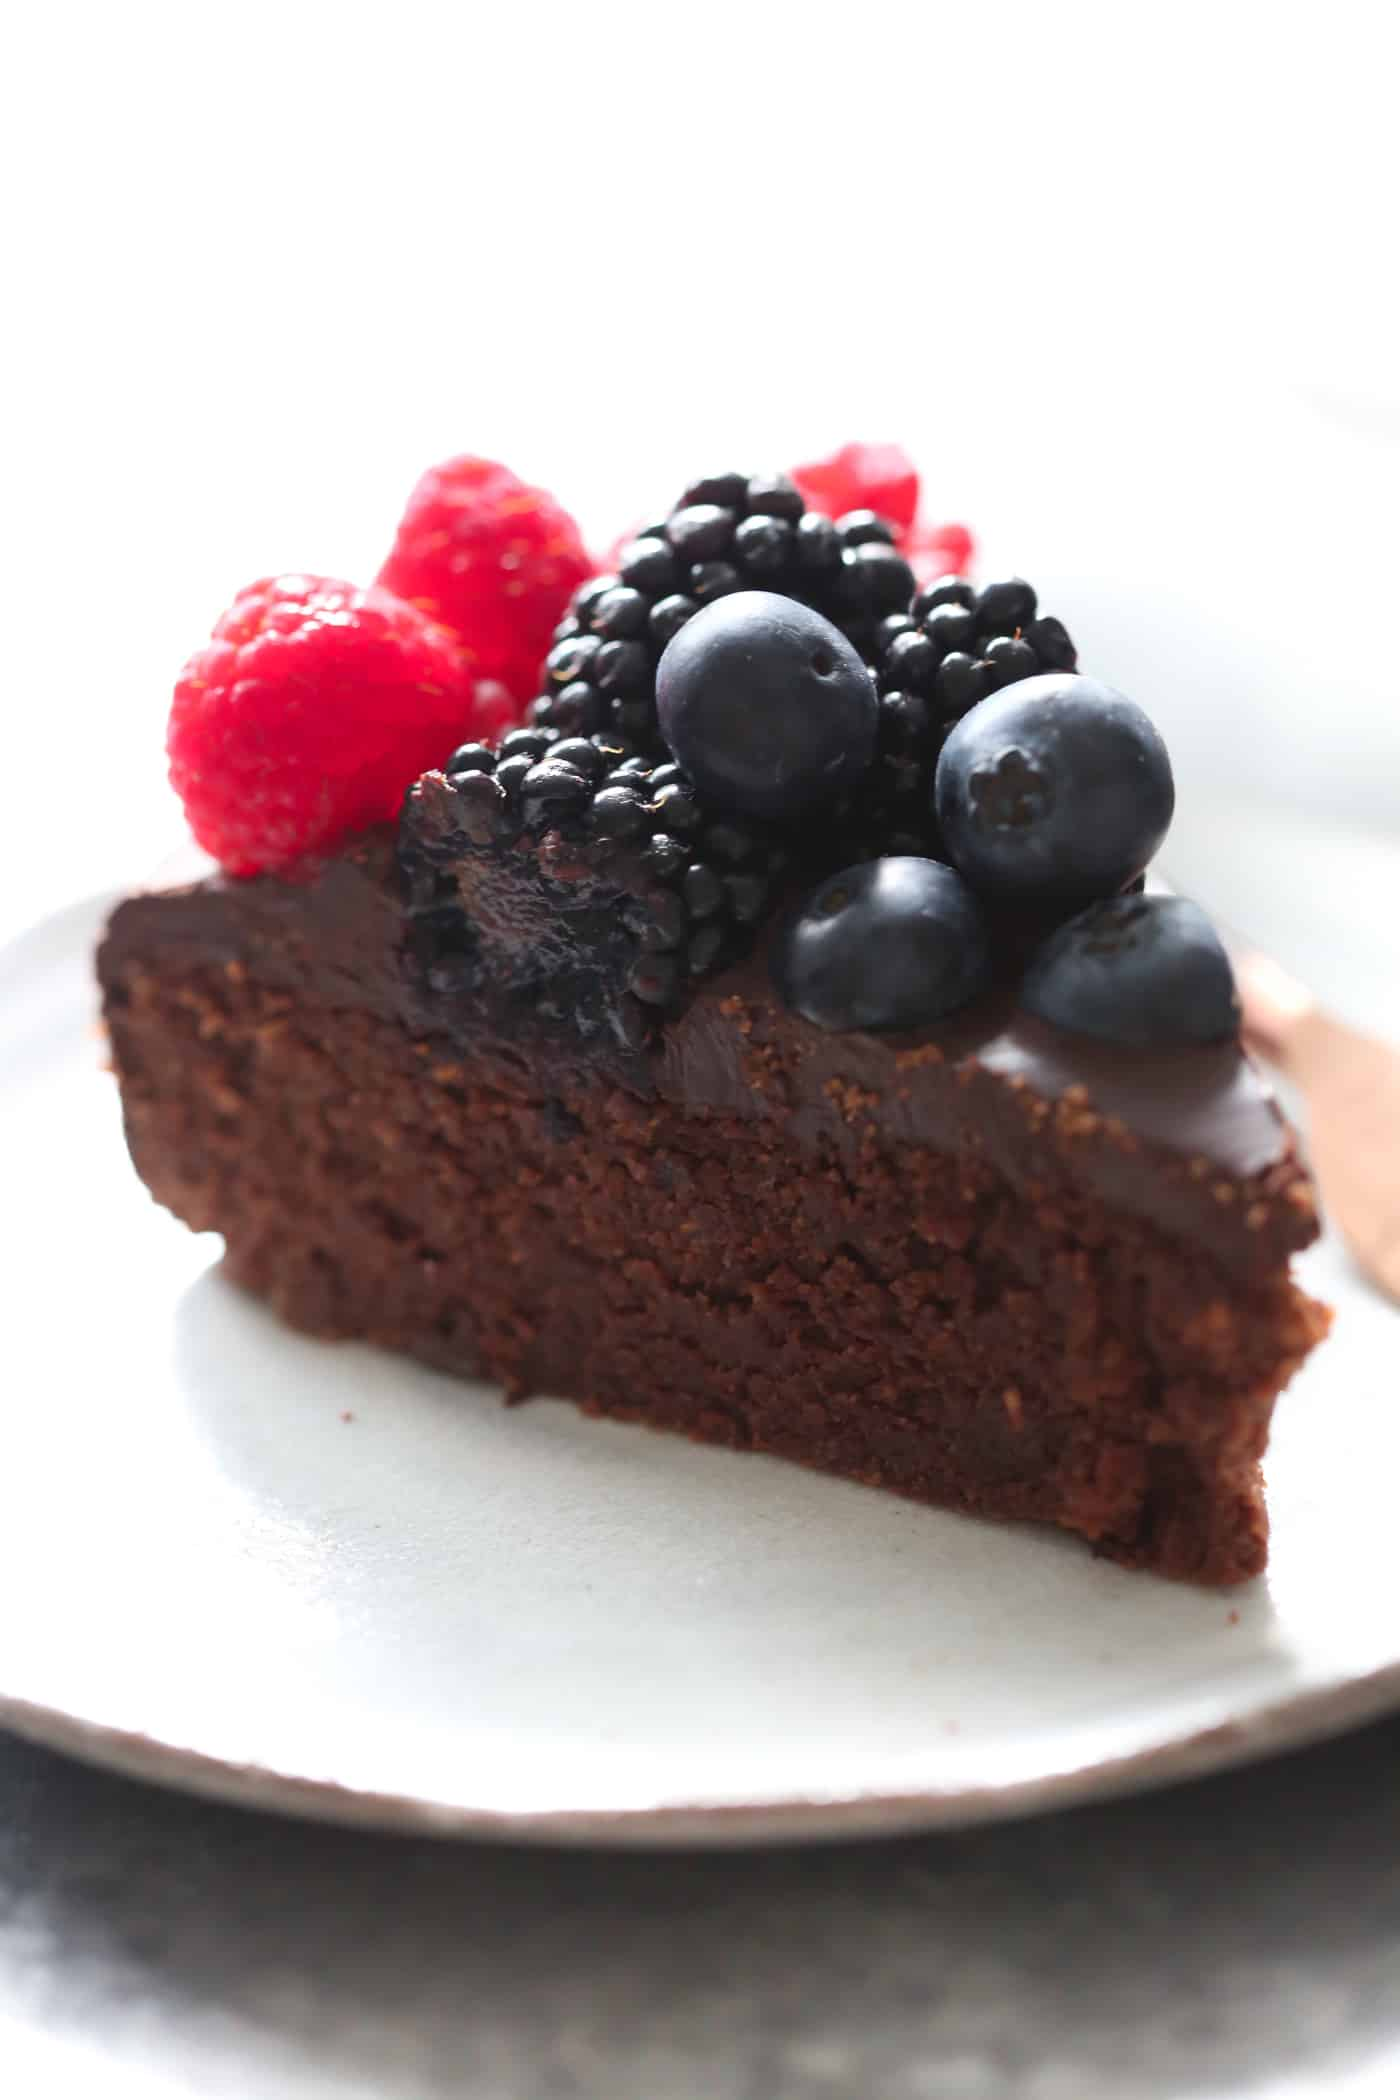 Permalink to Low Carb Chocolate Cake